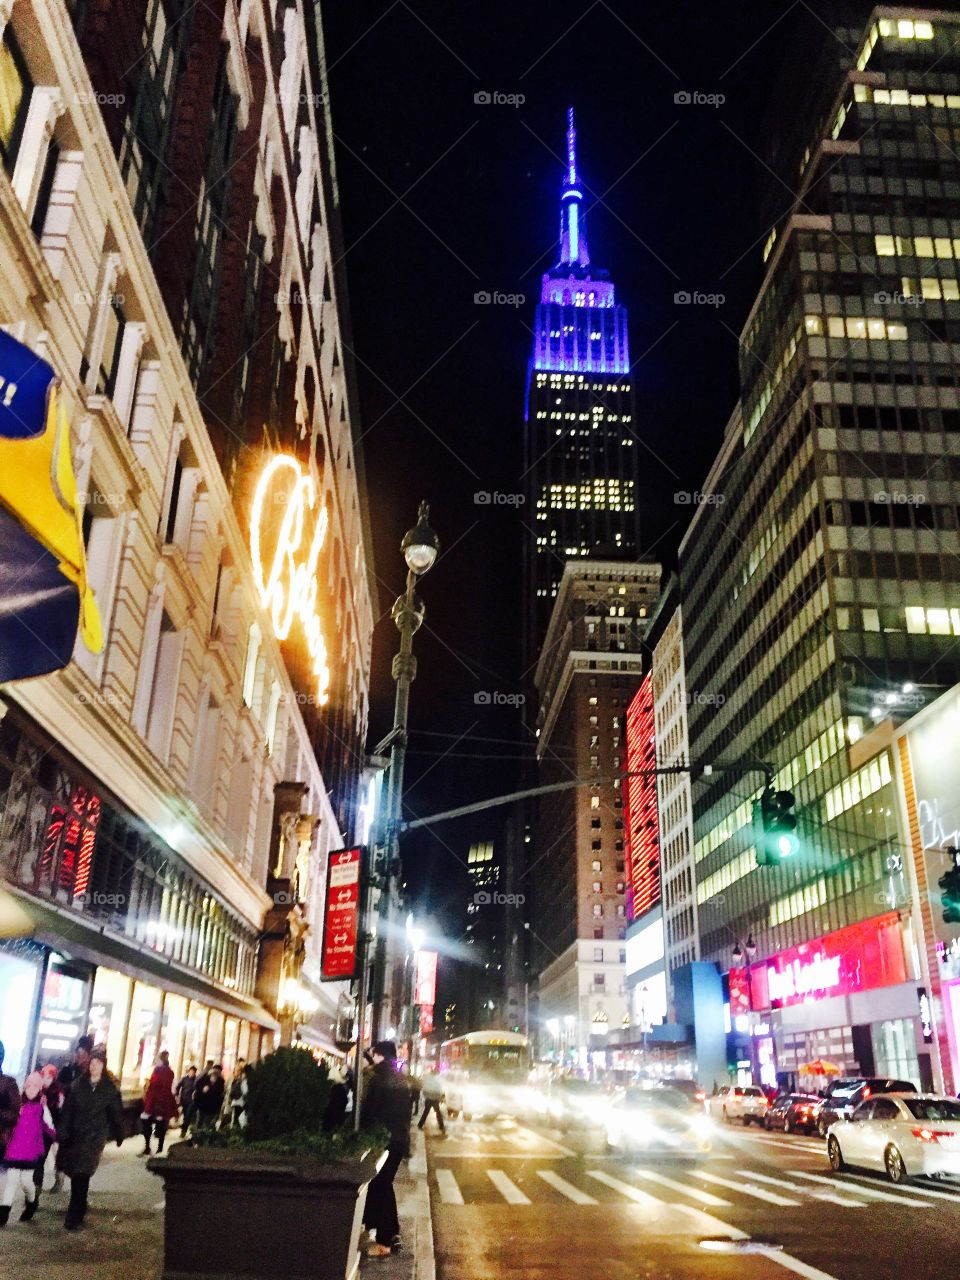 When I'm in New York, I just want to walk down the street and feel this thing, like I'm in a movie.